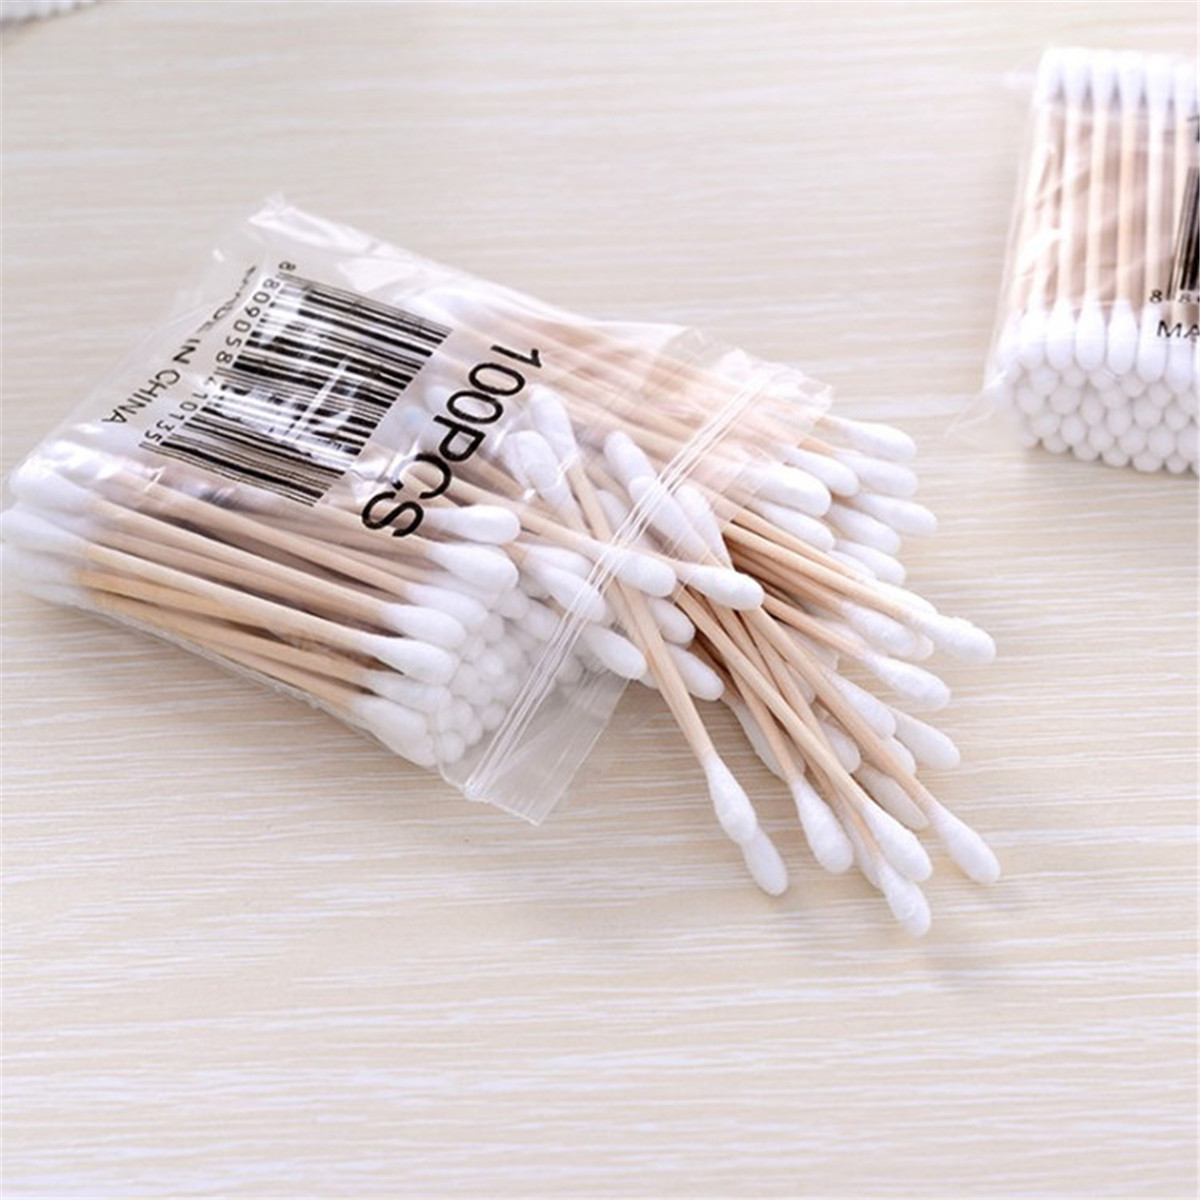 100-500pcs Cotton Swabs Swab Double Head Disposable Q-Tips Wooden Stick For Medical Applicator Nose Ears Cleaning Tools